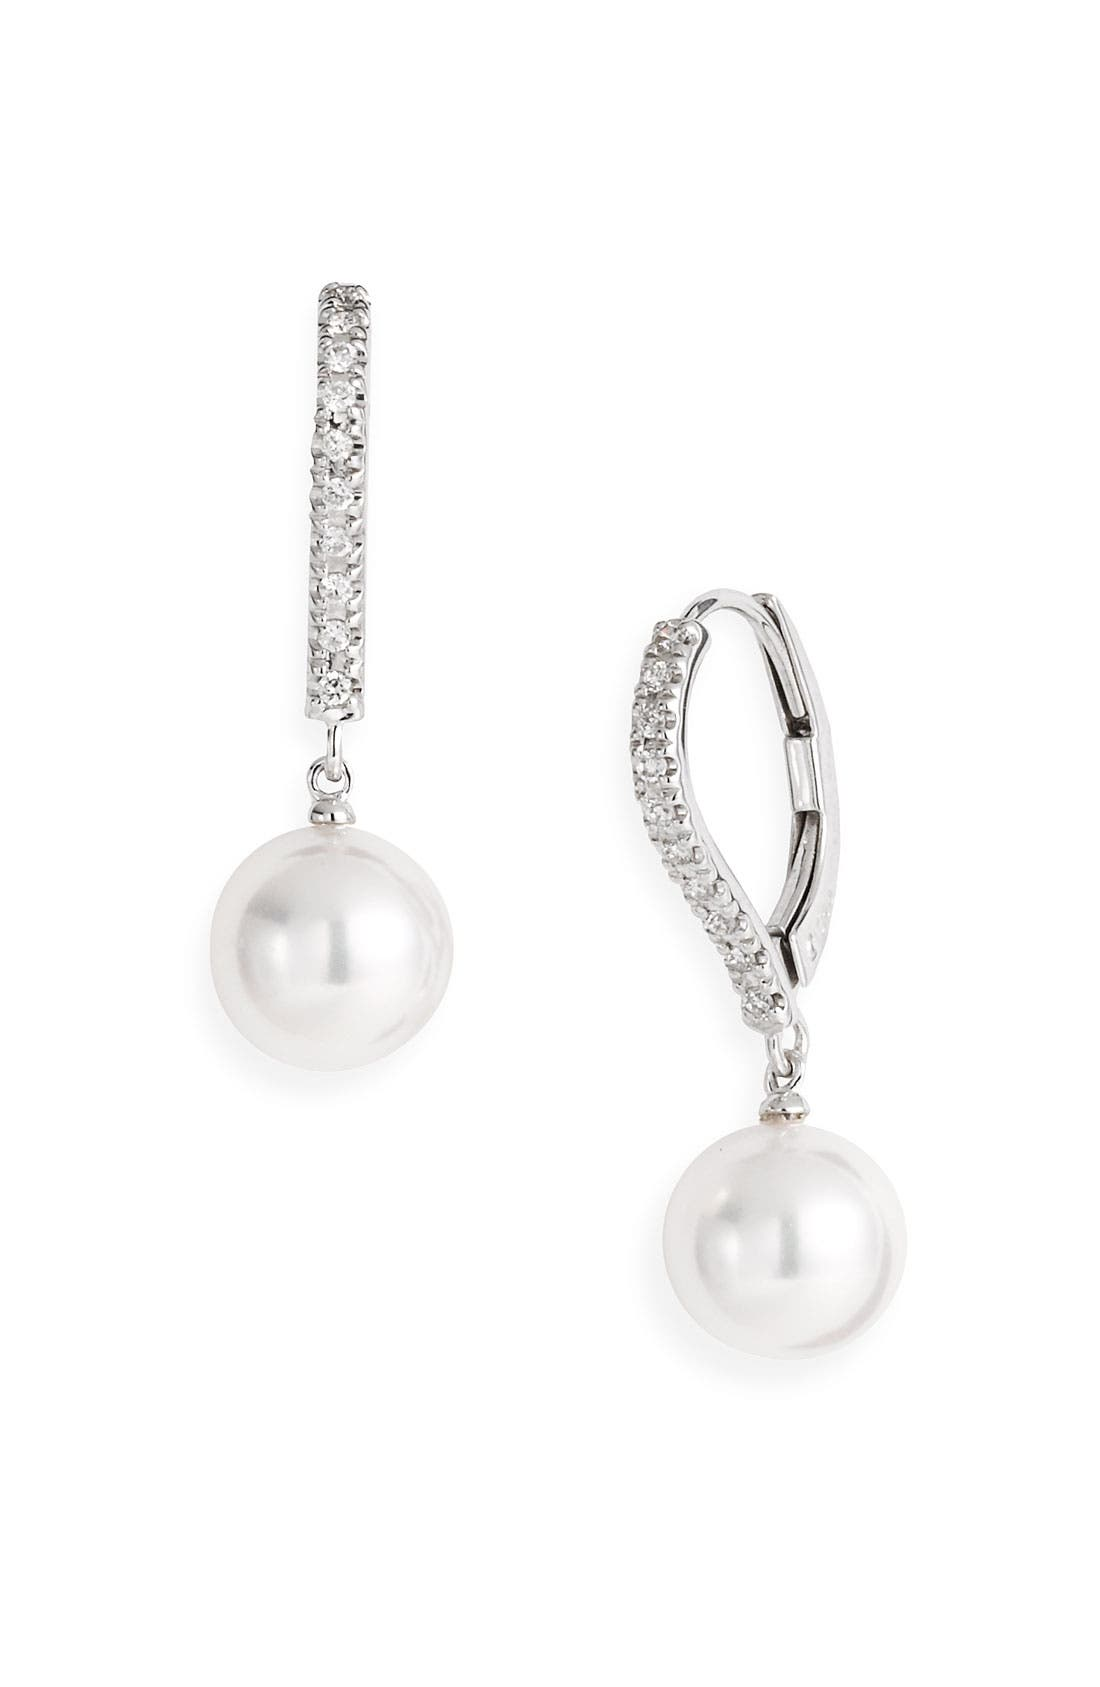 Alternate Image 1 Selected - Mikimoto Diamond & Akoya Cultured Pearl Earrings